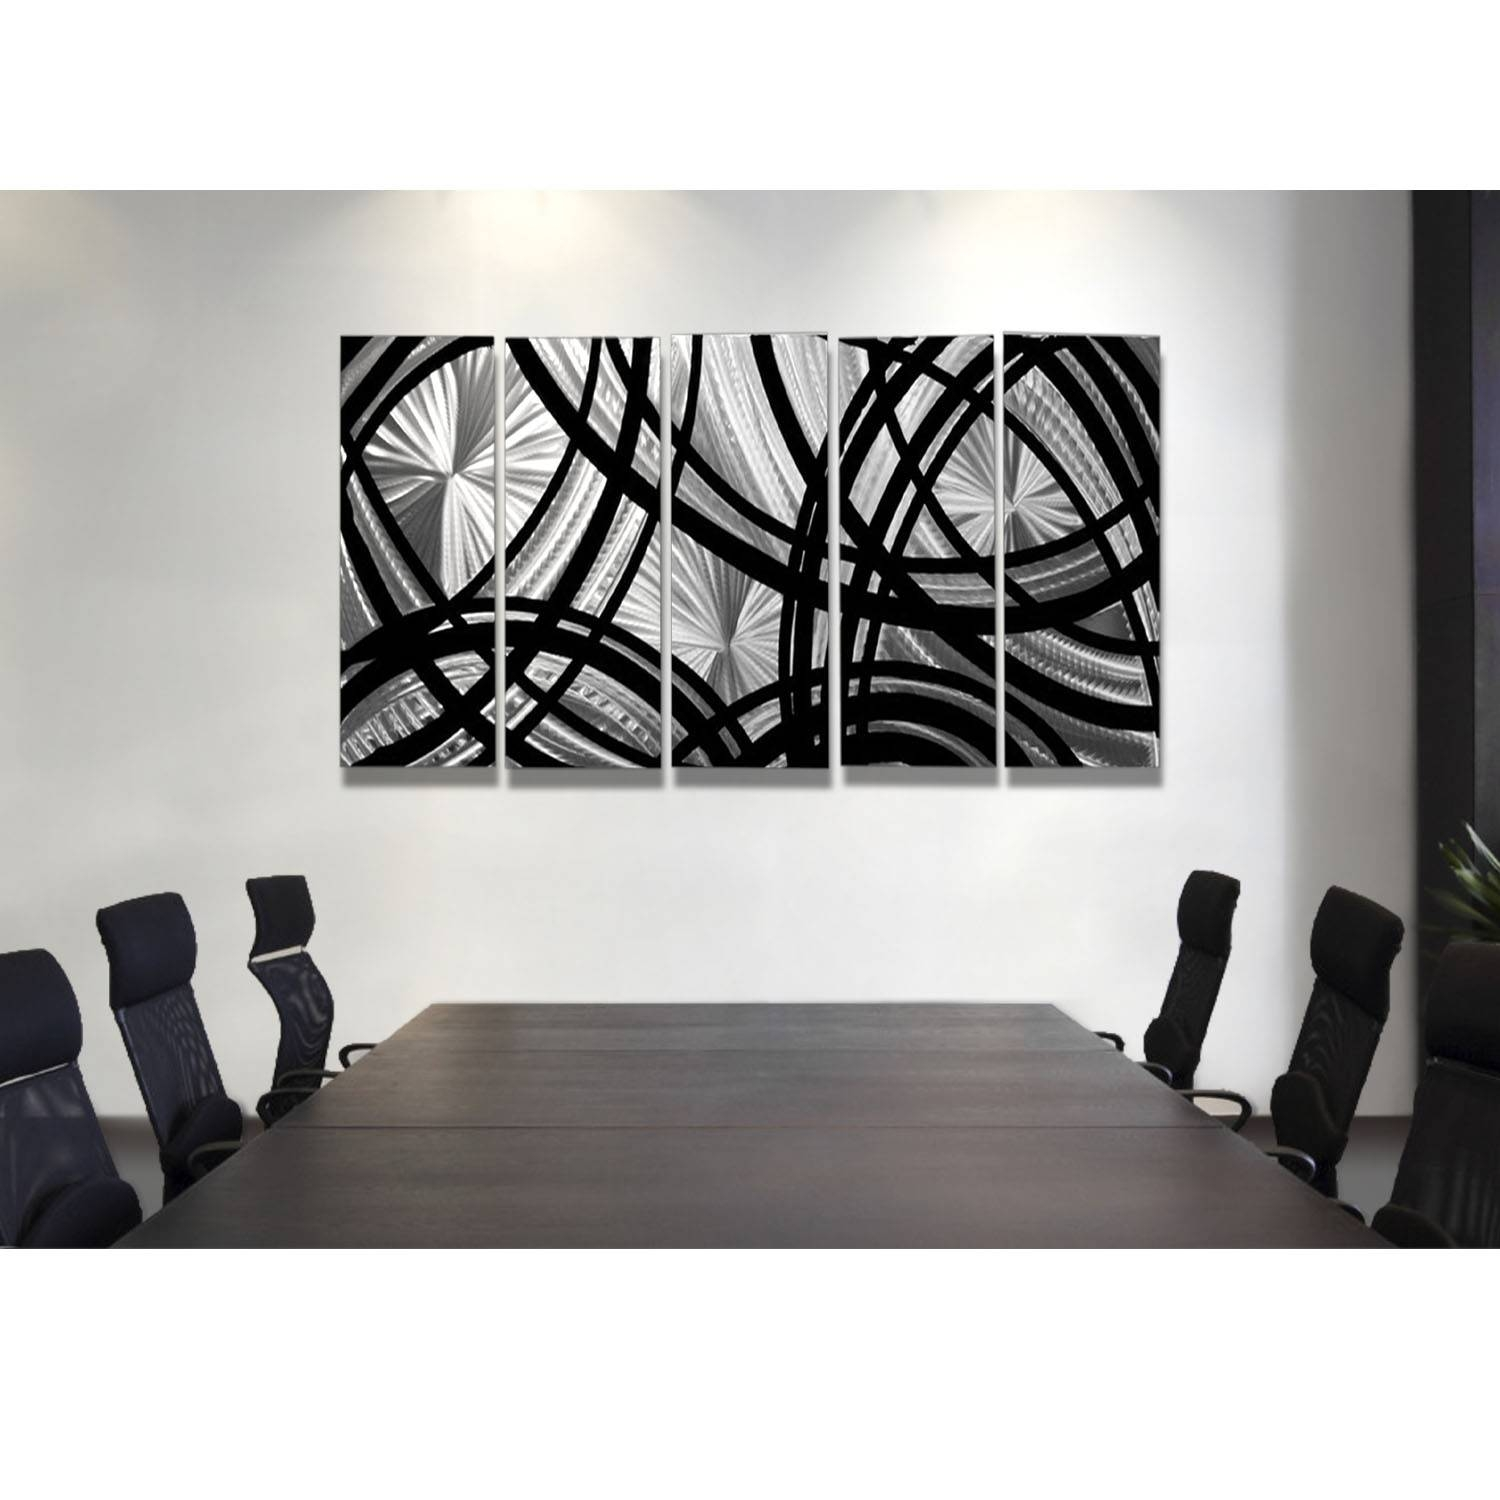 Frequency One – Black And Silver Metal Wall Art – 5 Panel Wall Intended For 2018 Black And Silver Metal Wall Art (View 5 of 20)